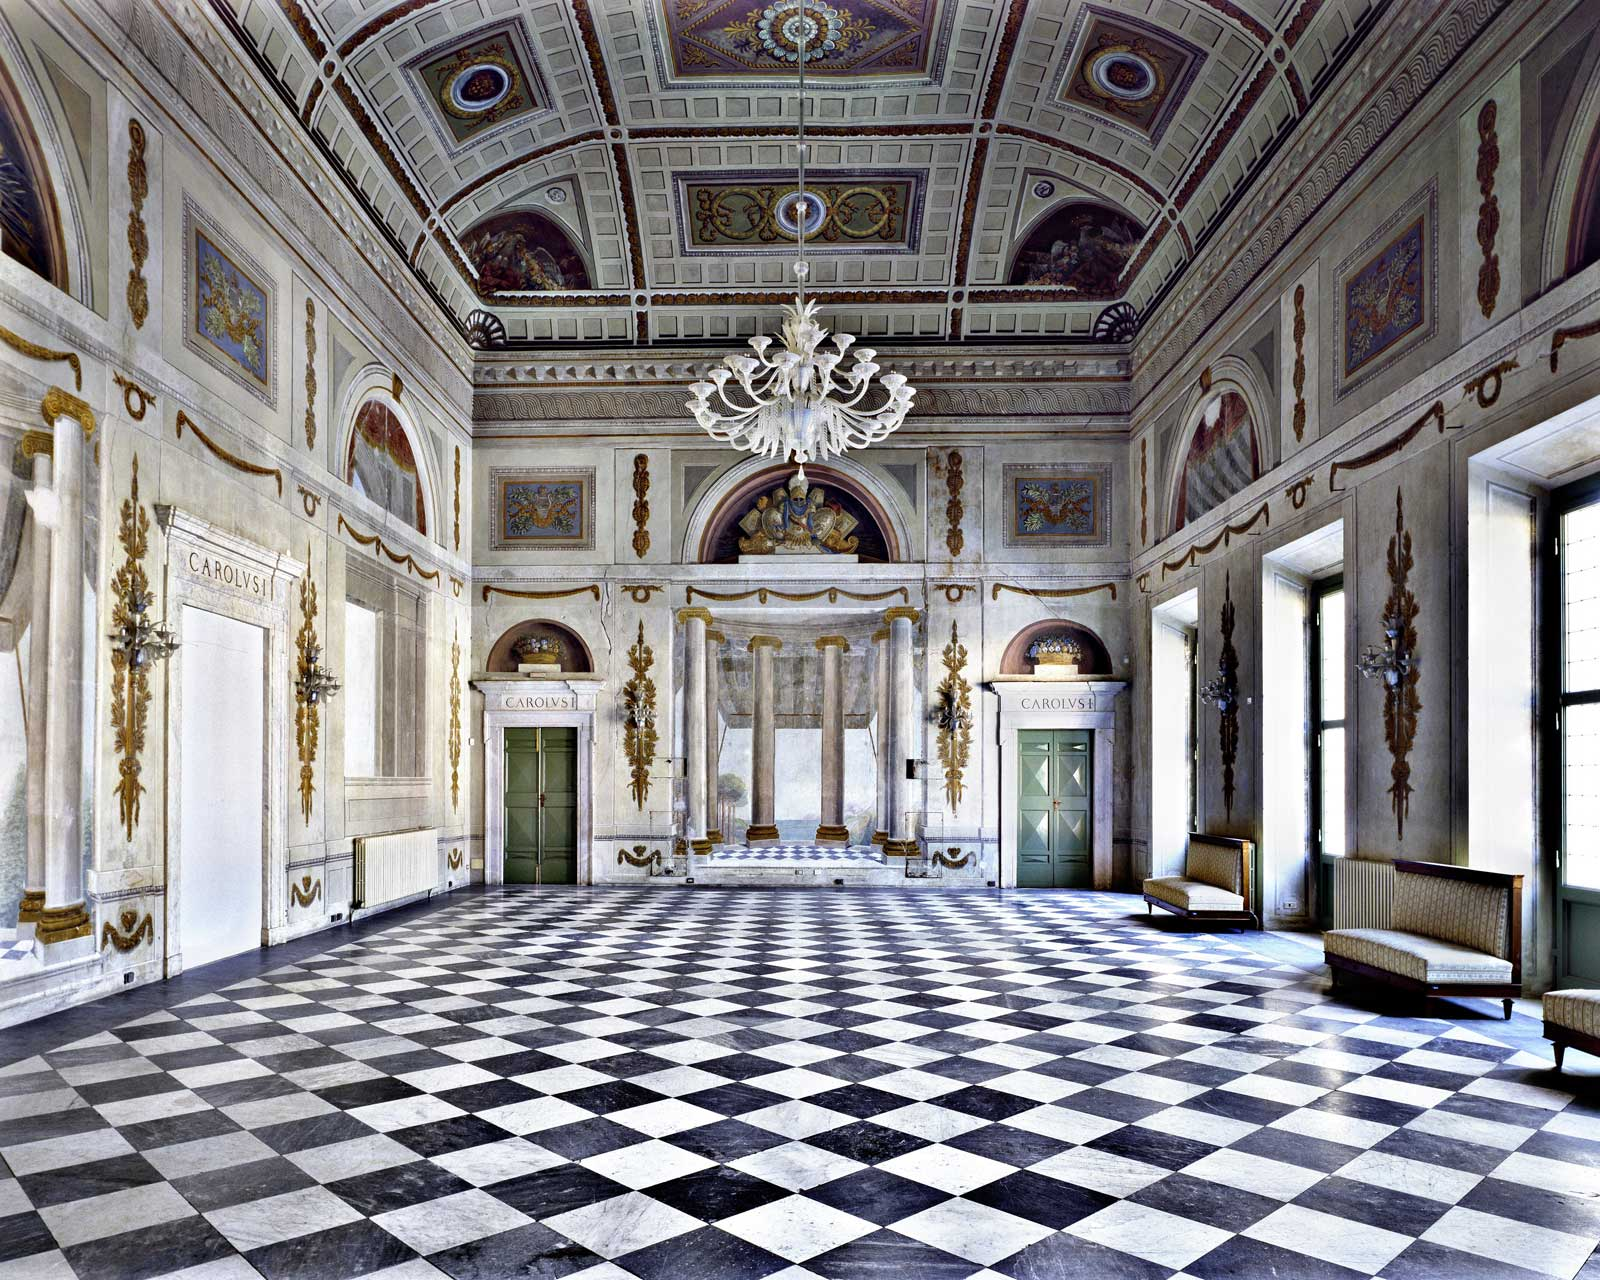 Photographic Architecture By Massimo Listri Archaeology Wiki